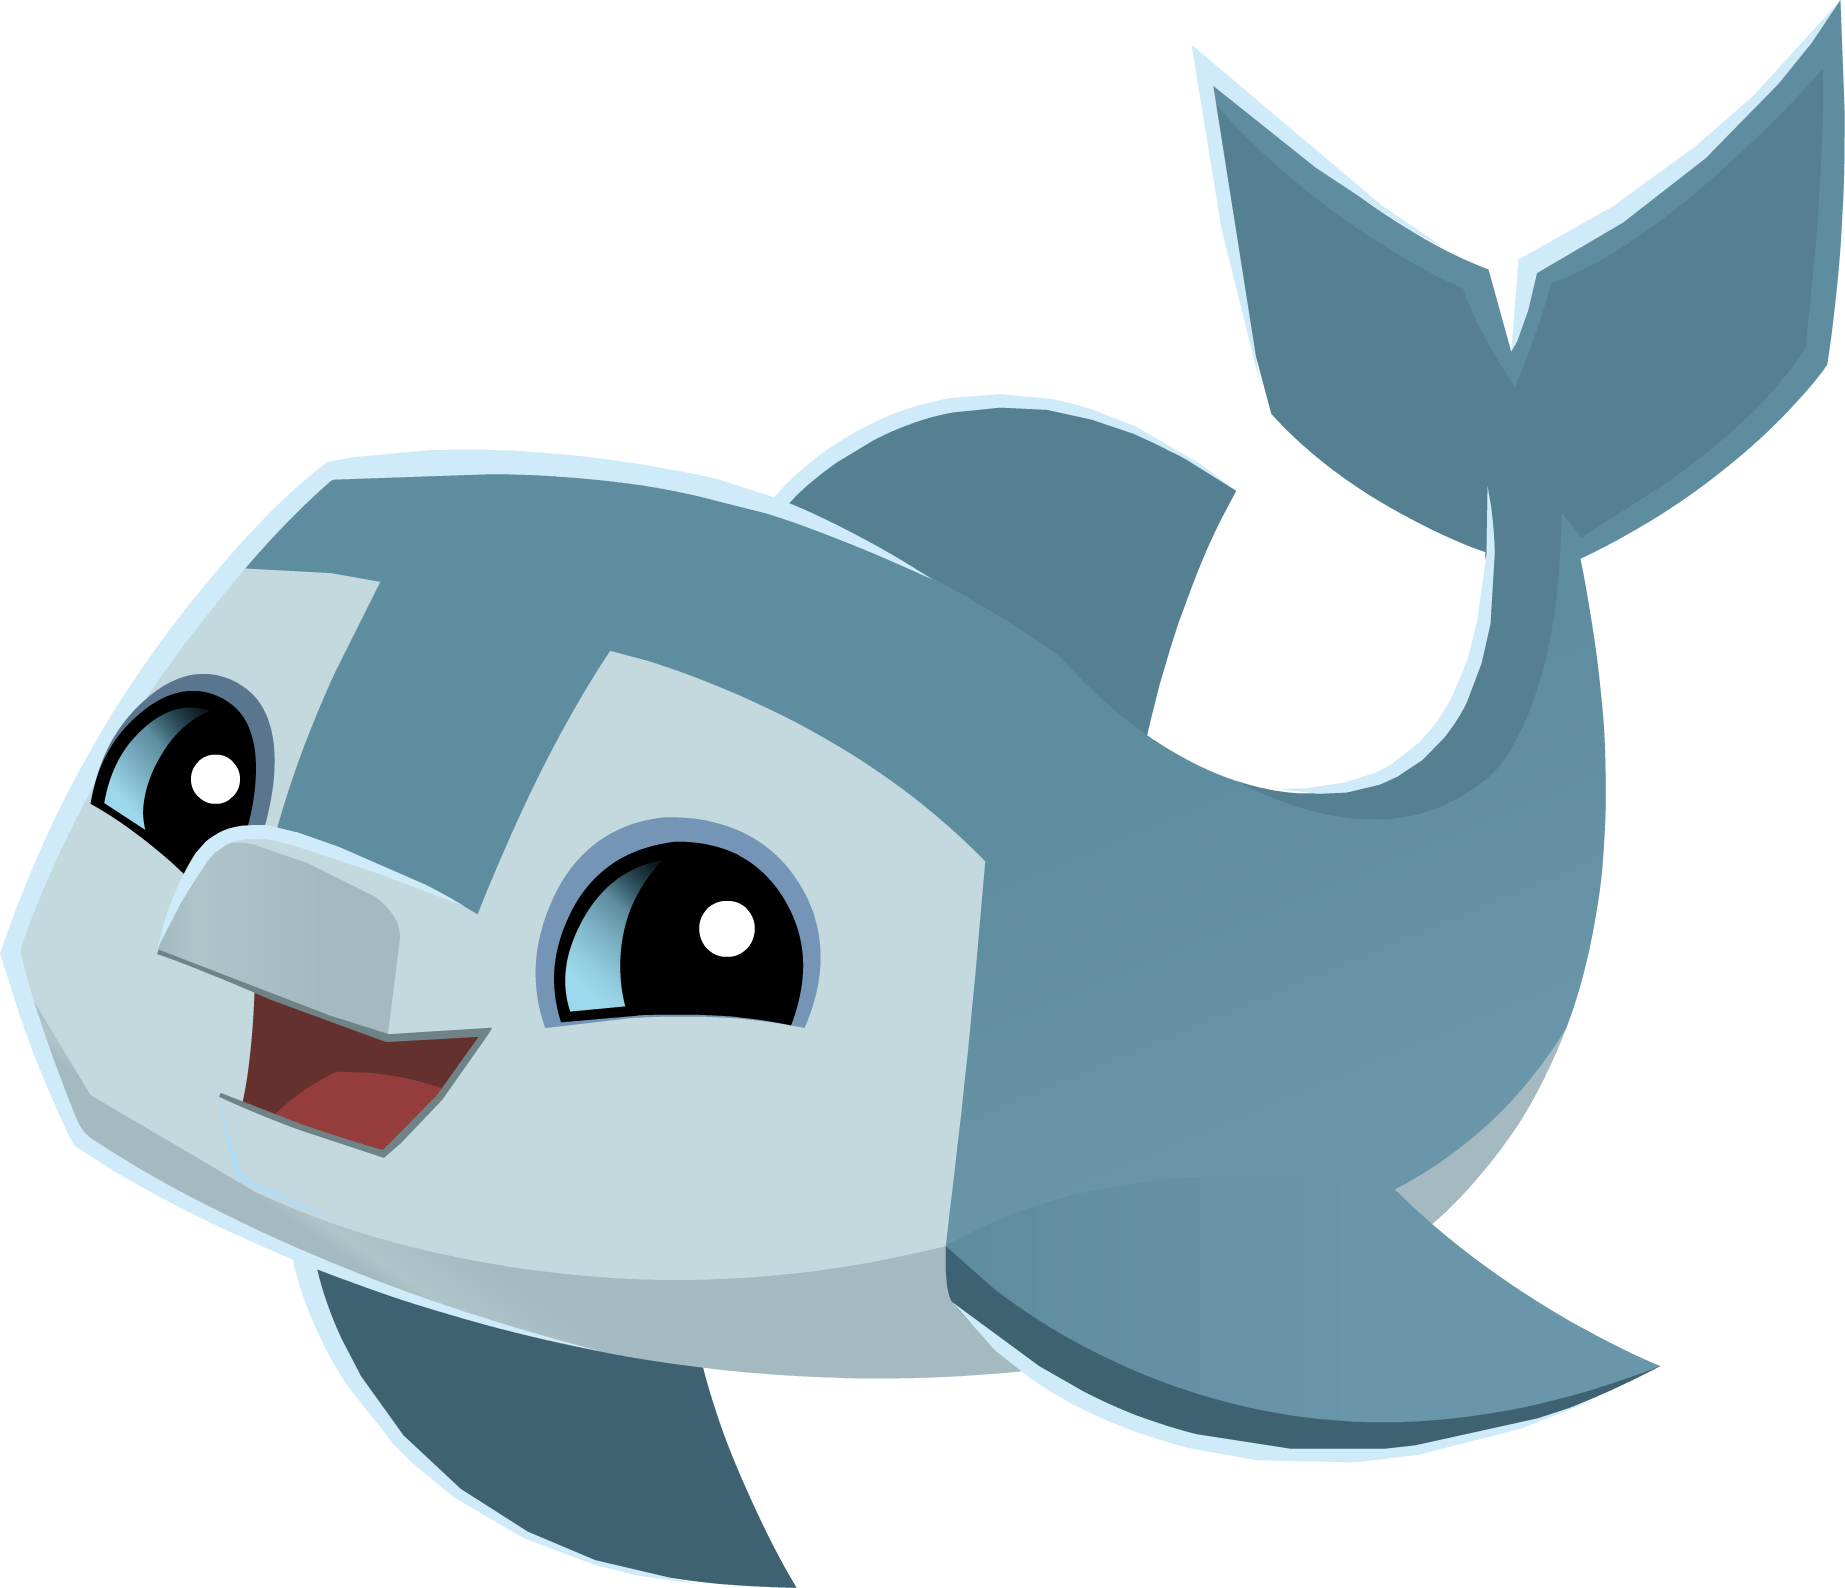 Dolphin clipart superhero. Image blue graphic png